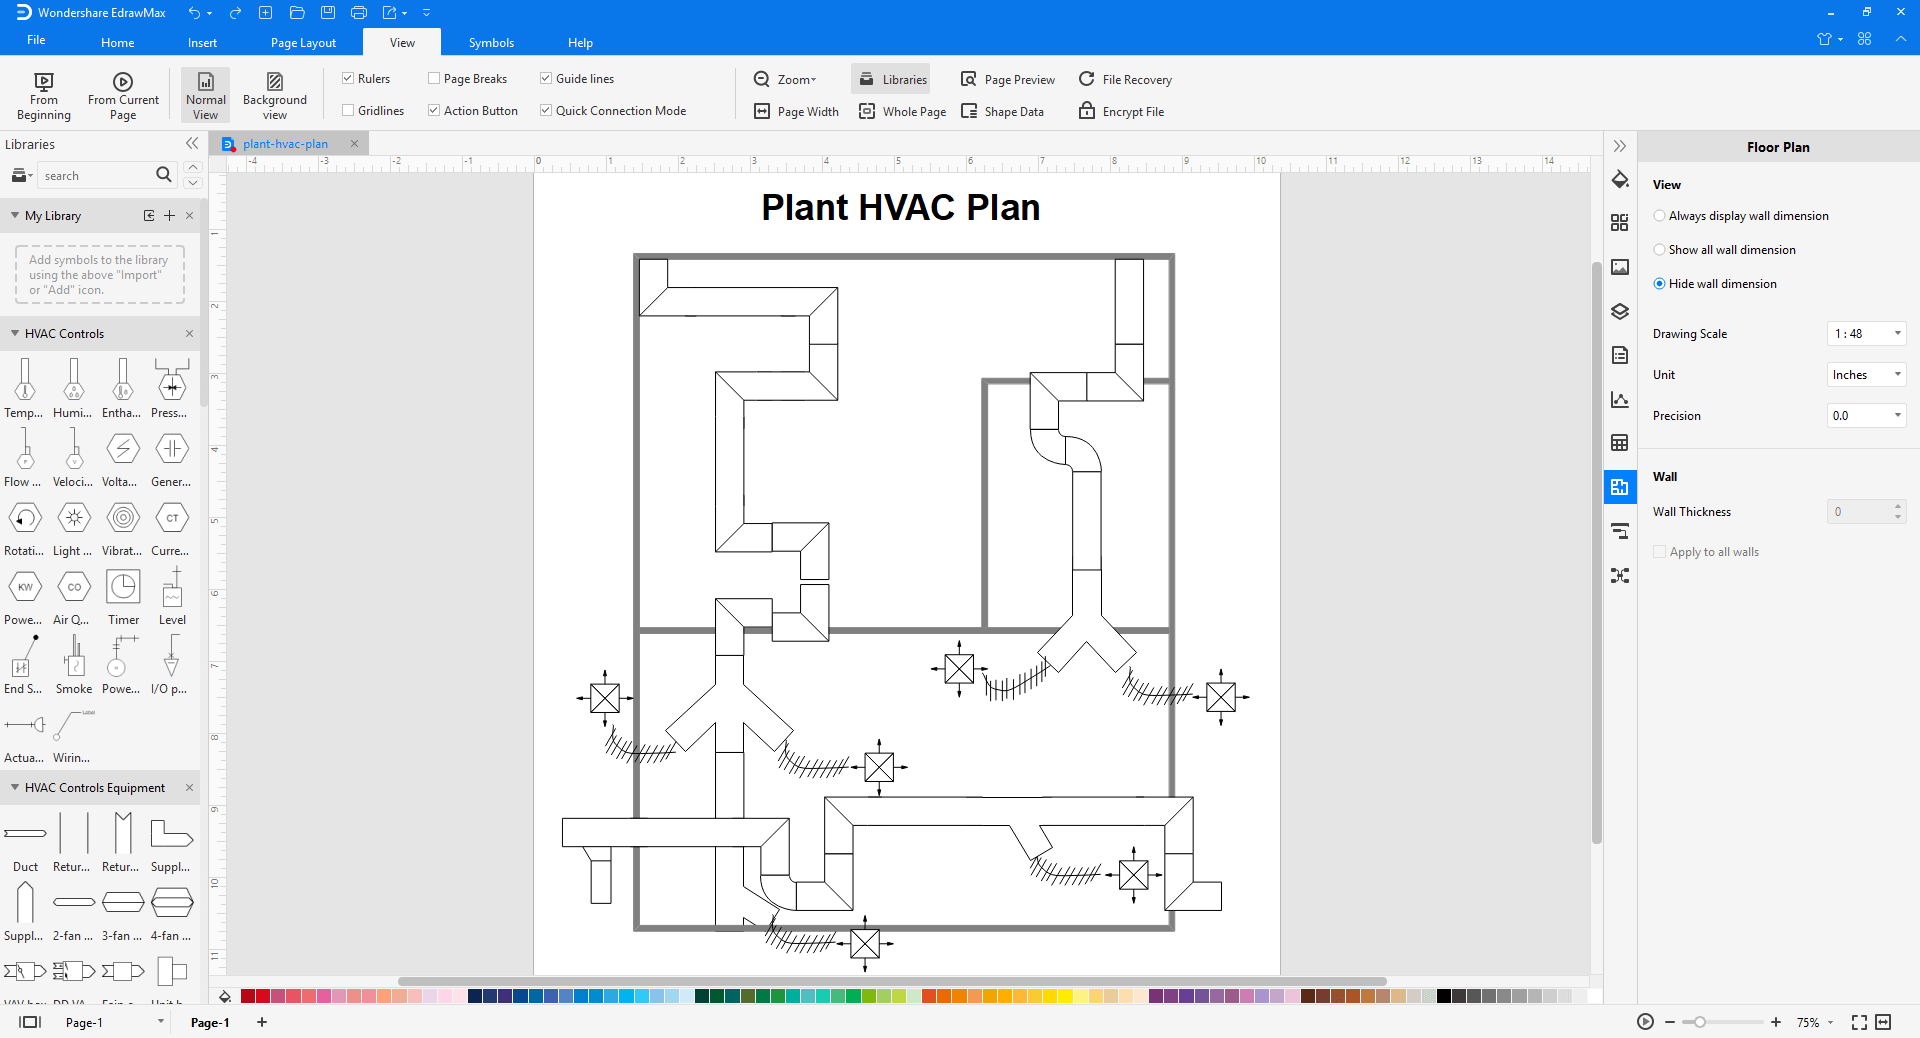 Standard HVAC Plan Symbols and Their Meanings | Hvac Drawing Conventions |  | Edraw